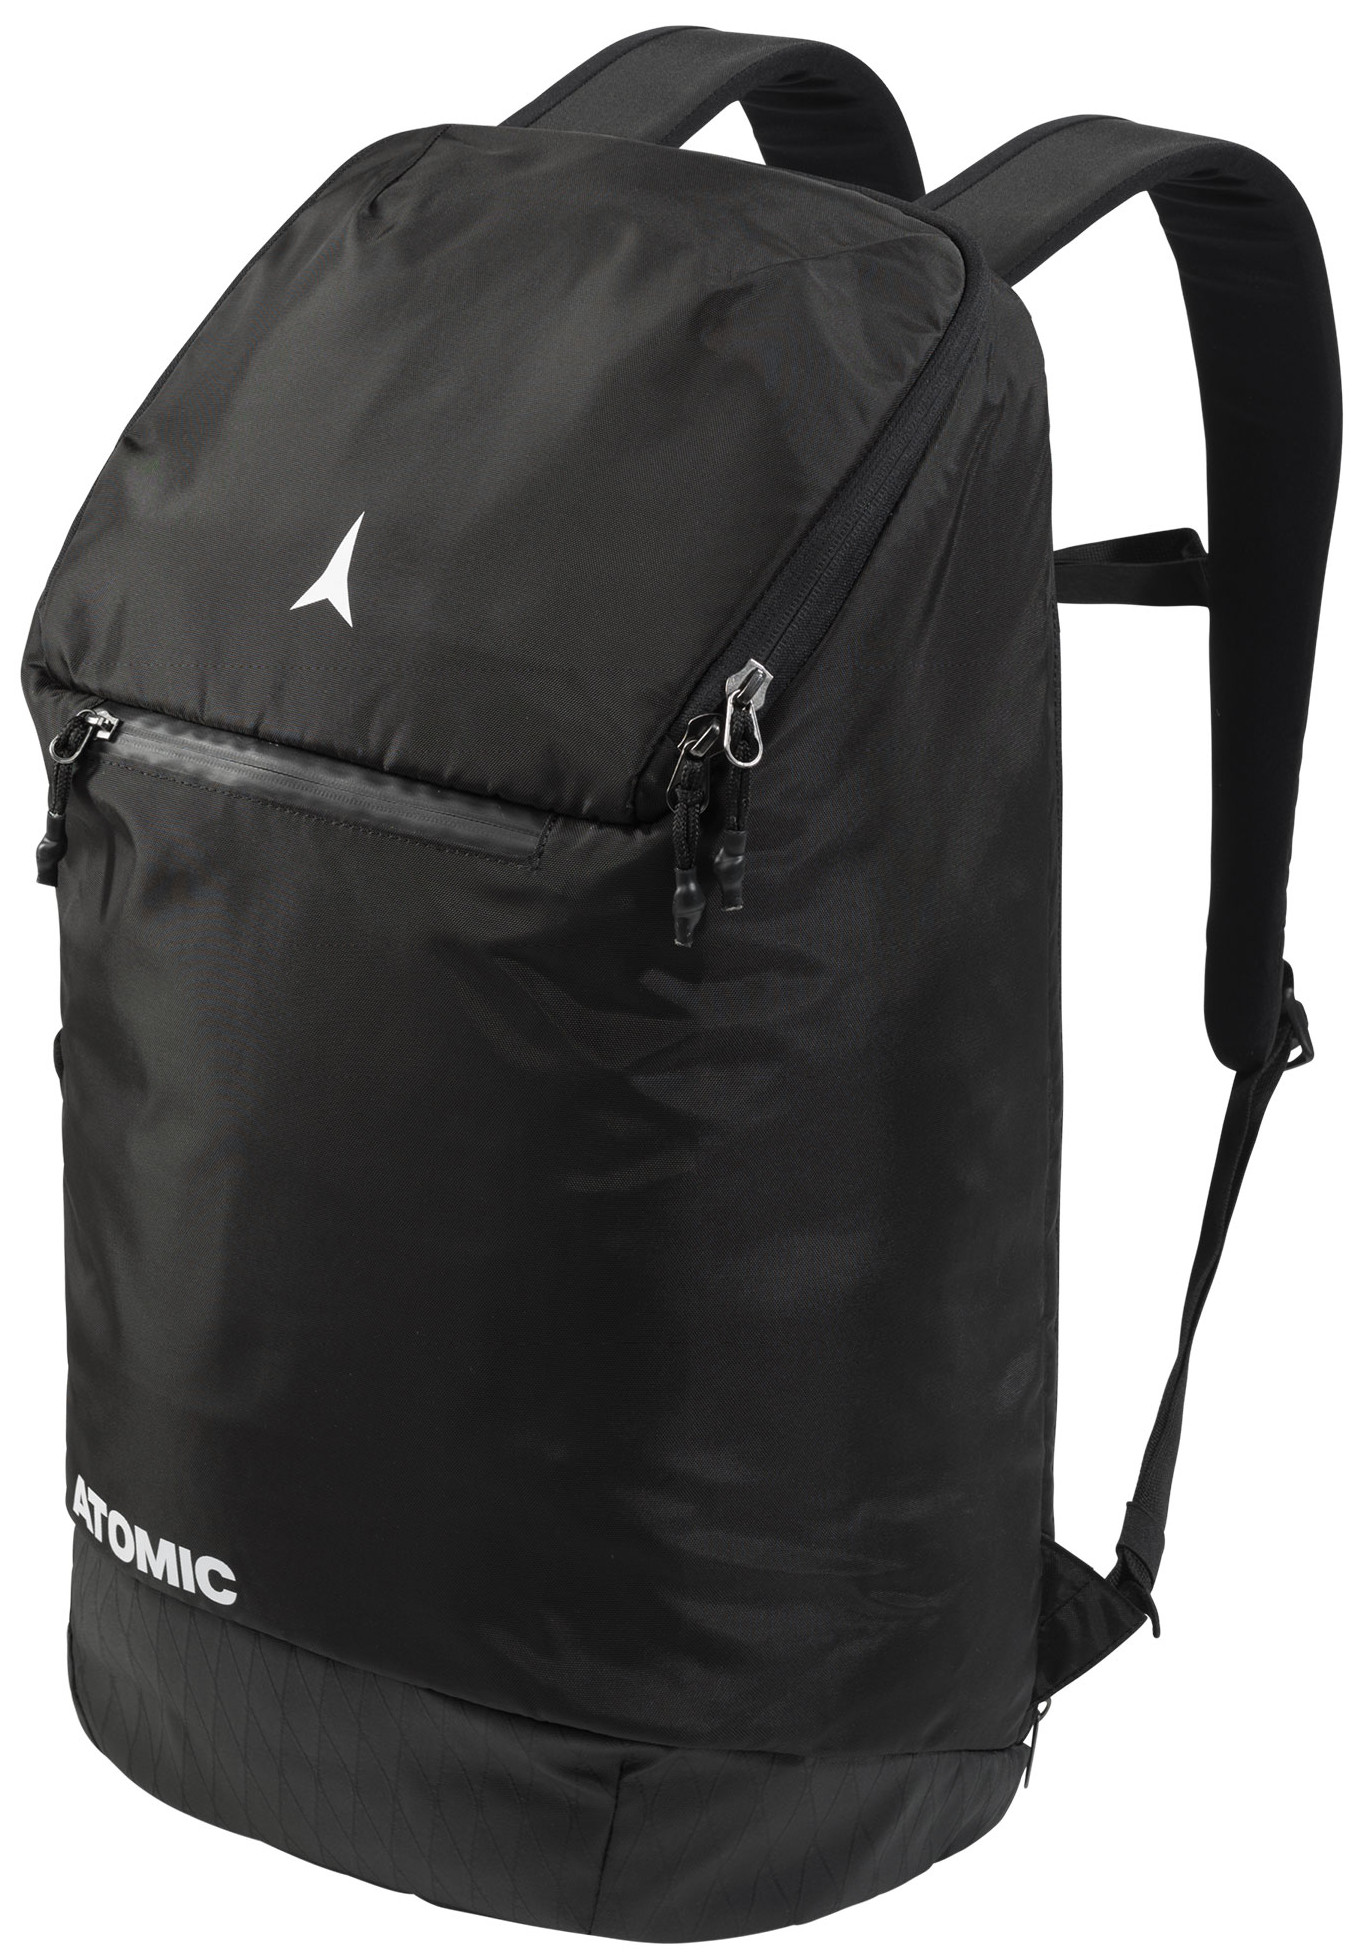 Рюкзак Atomic Bag Laptop Pack 22 л Black/Black - Фото 1 большая